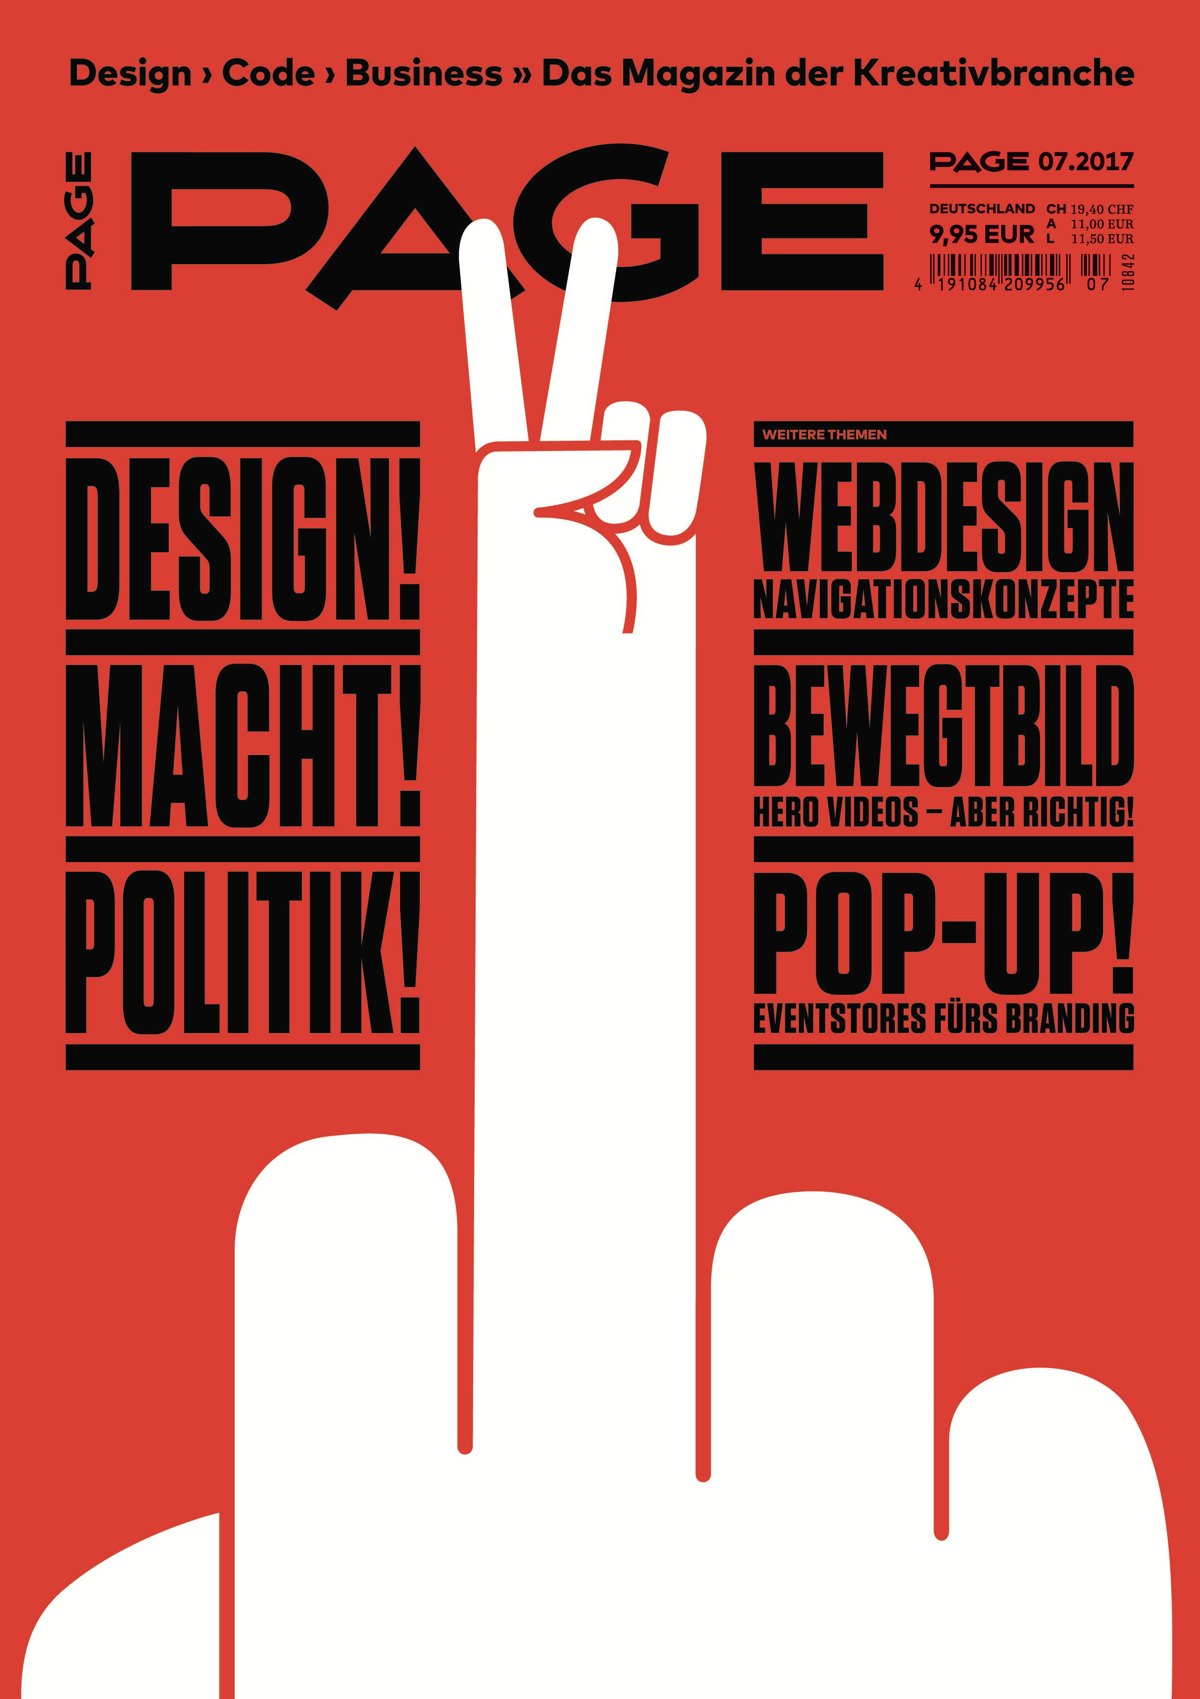 Kampagne, Design, Kommunikationsdesign, Ausstellungen, Kreativbranche, Grafikdesign